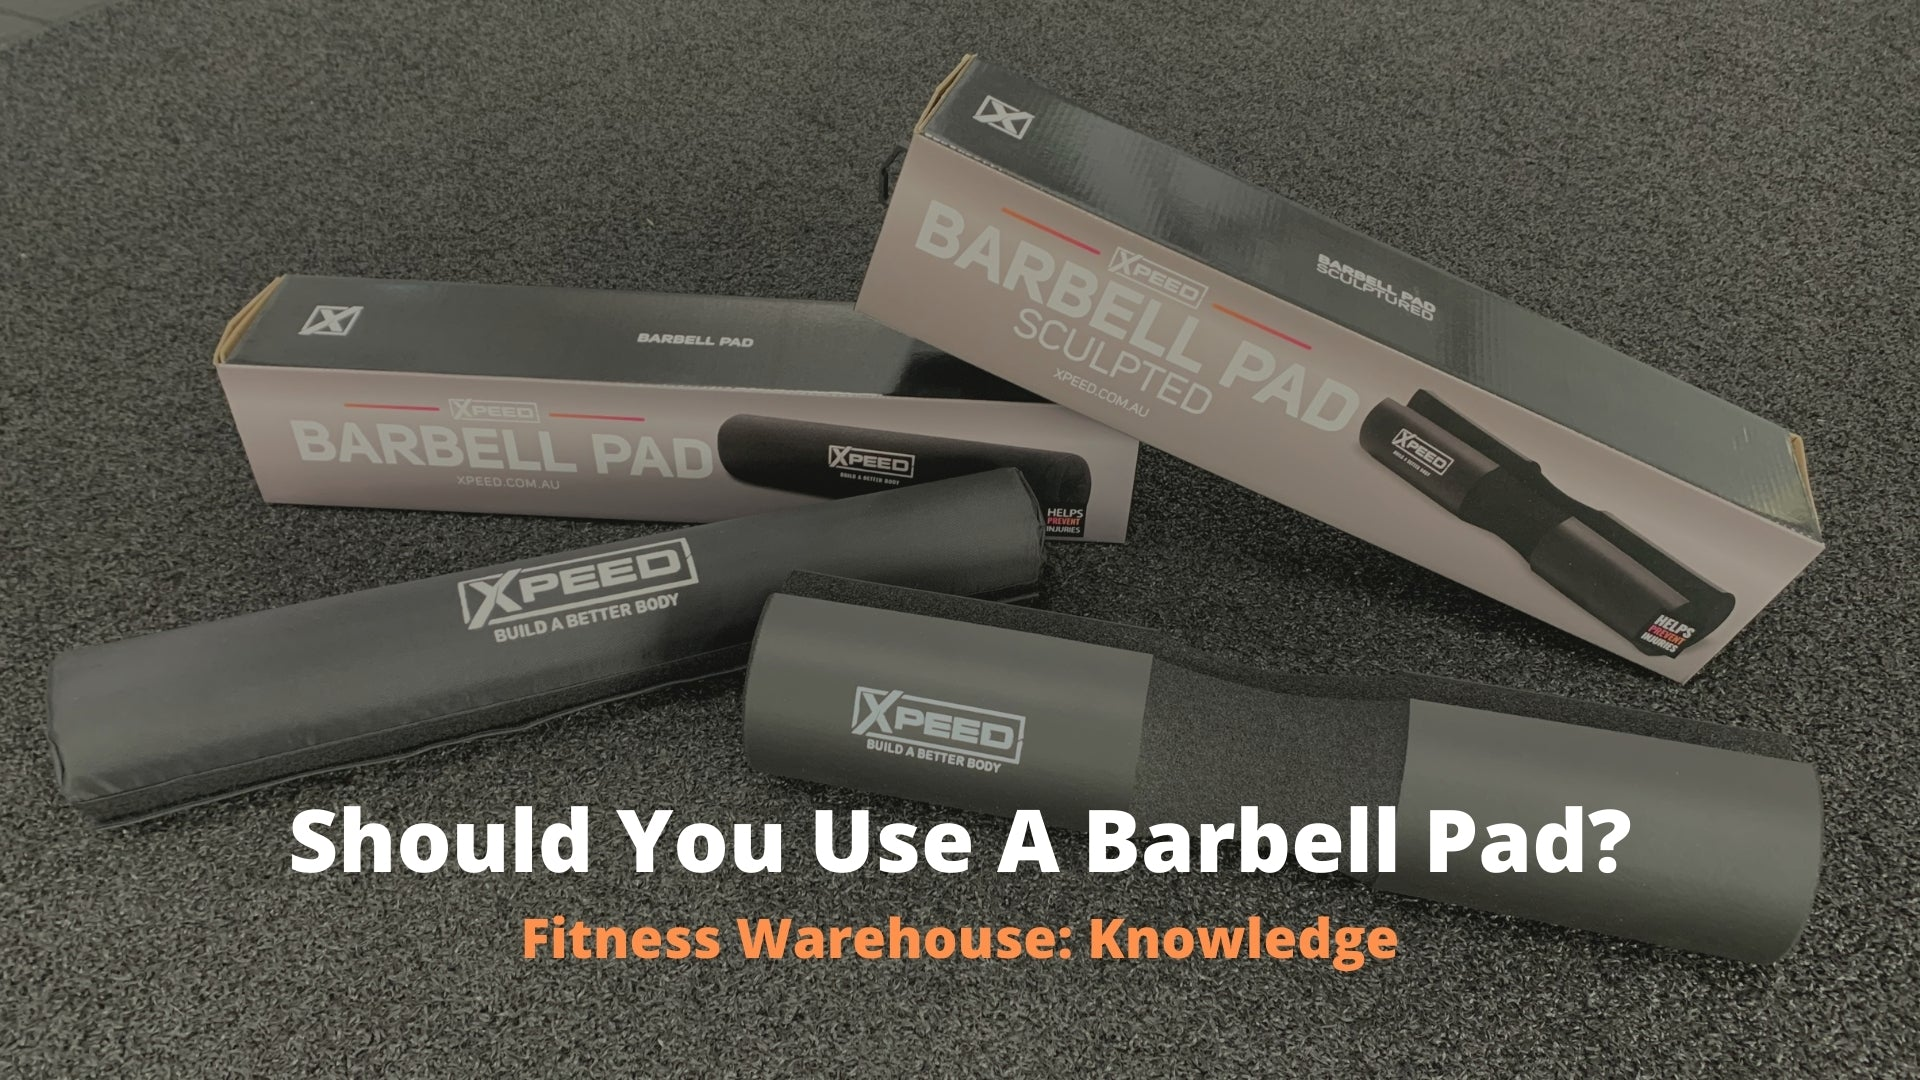 Should You Use A Barbell Pad?